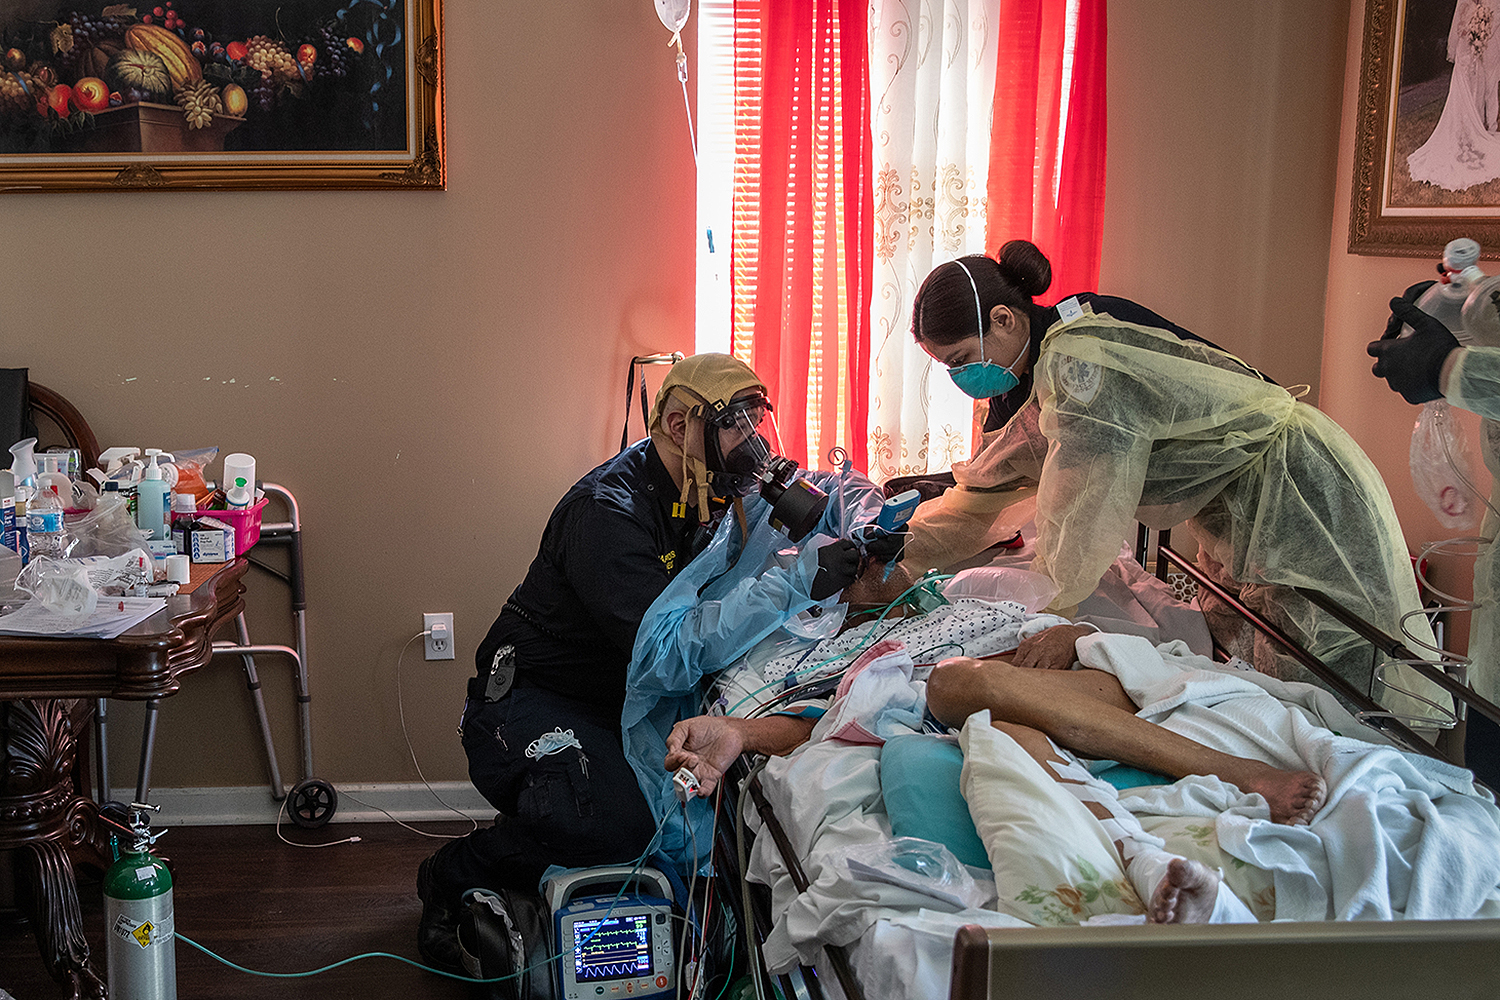 Medics intubate a patient with COVID-19 symptoms at his home in Yonkers, New York, on April 6. The man, 92, was barely breathing when they arrived. John Moore/Getty Images